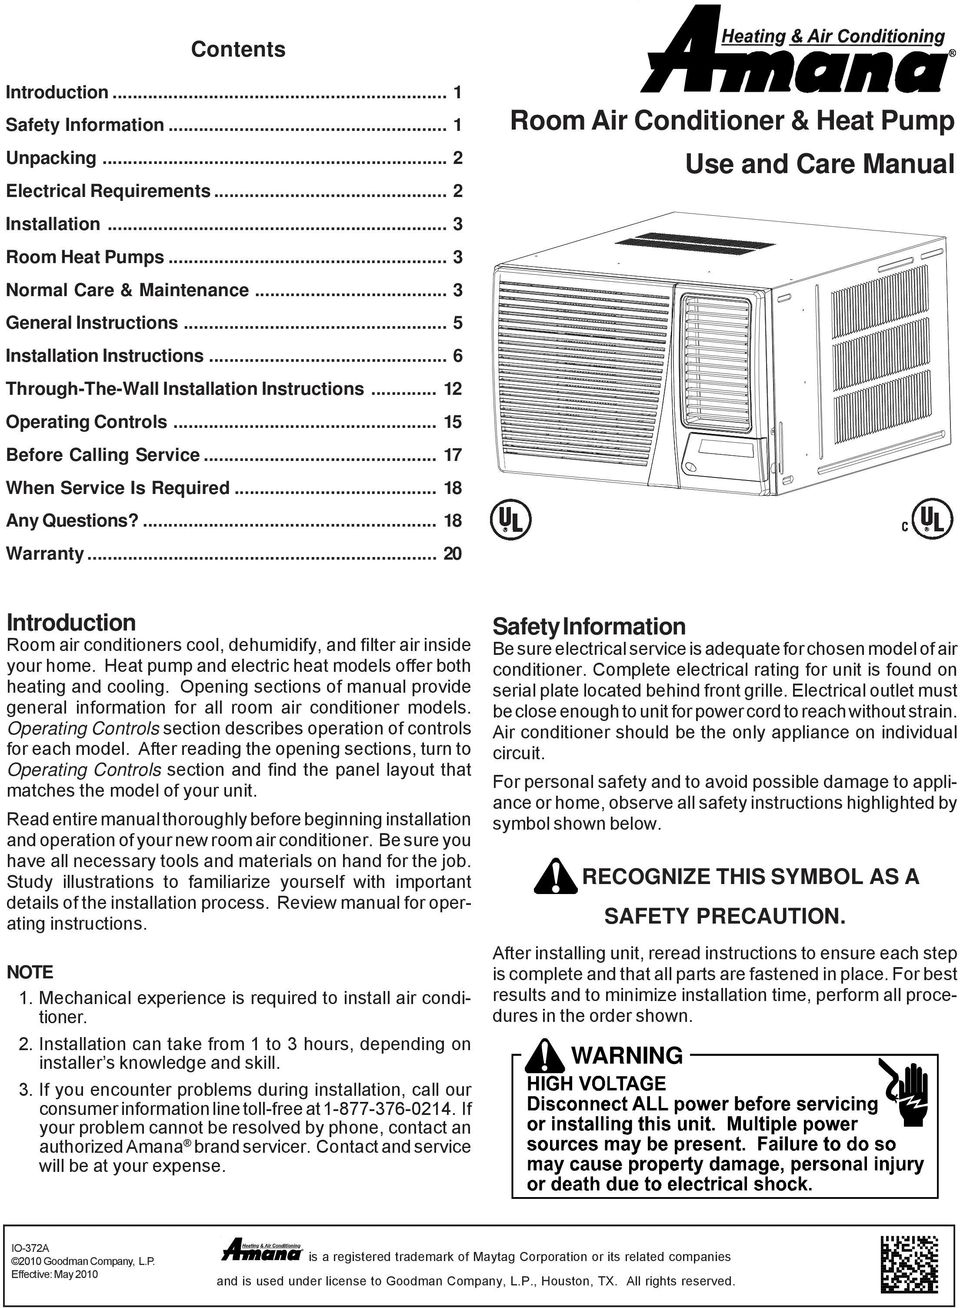 Room Air Conditioner & Heat Pump Use and Care Manual - PDF